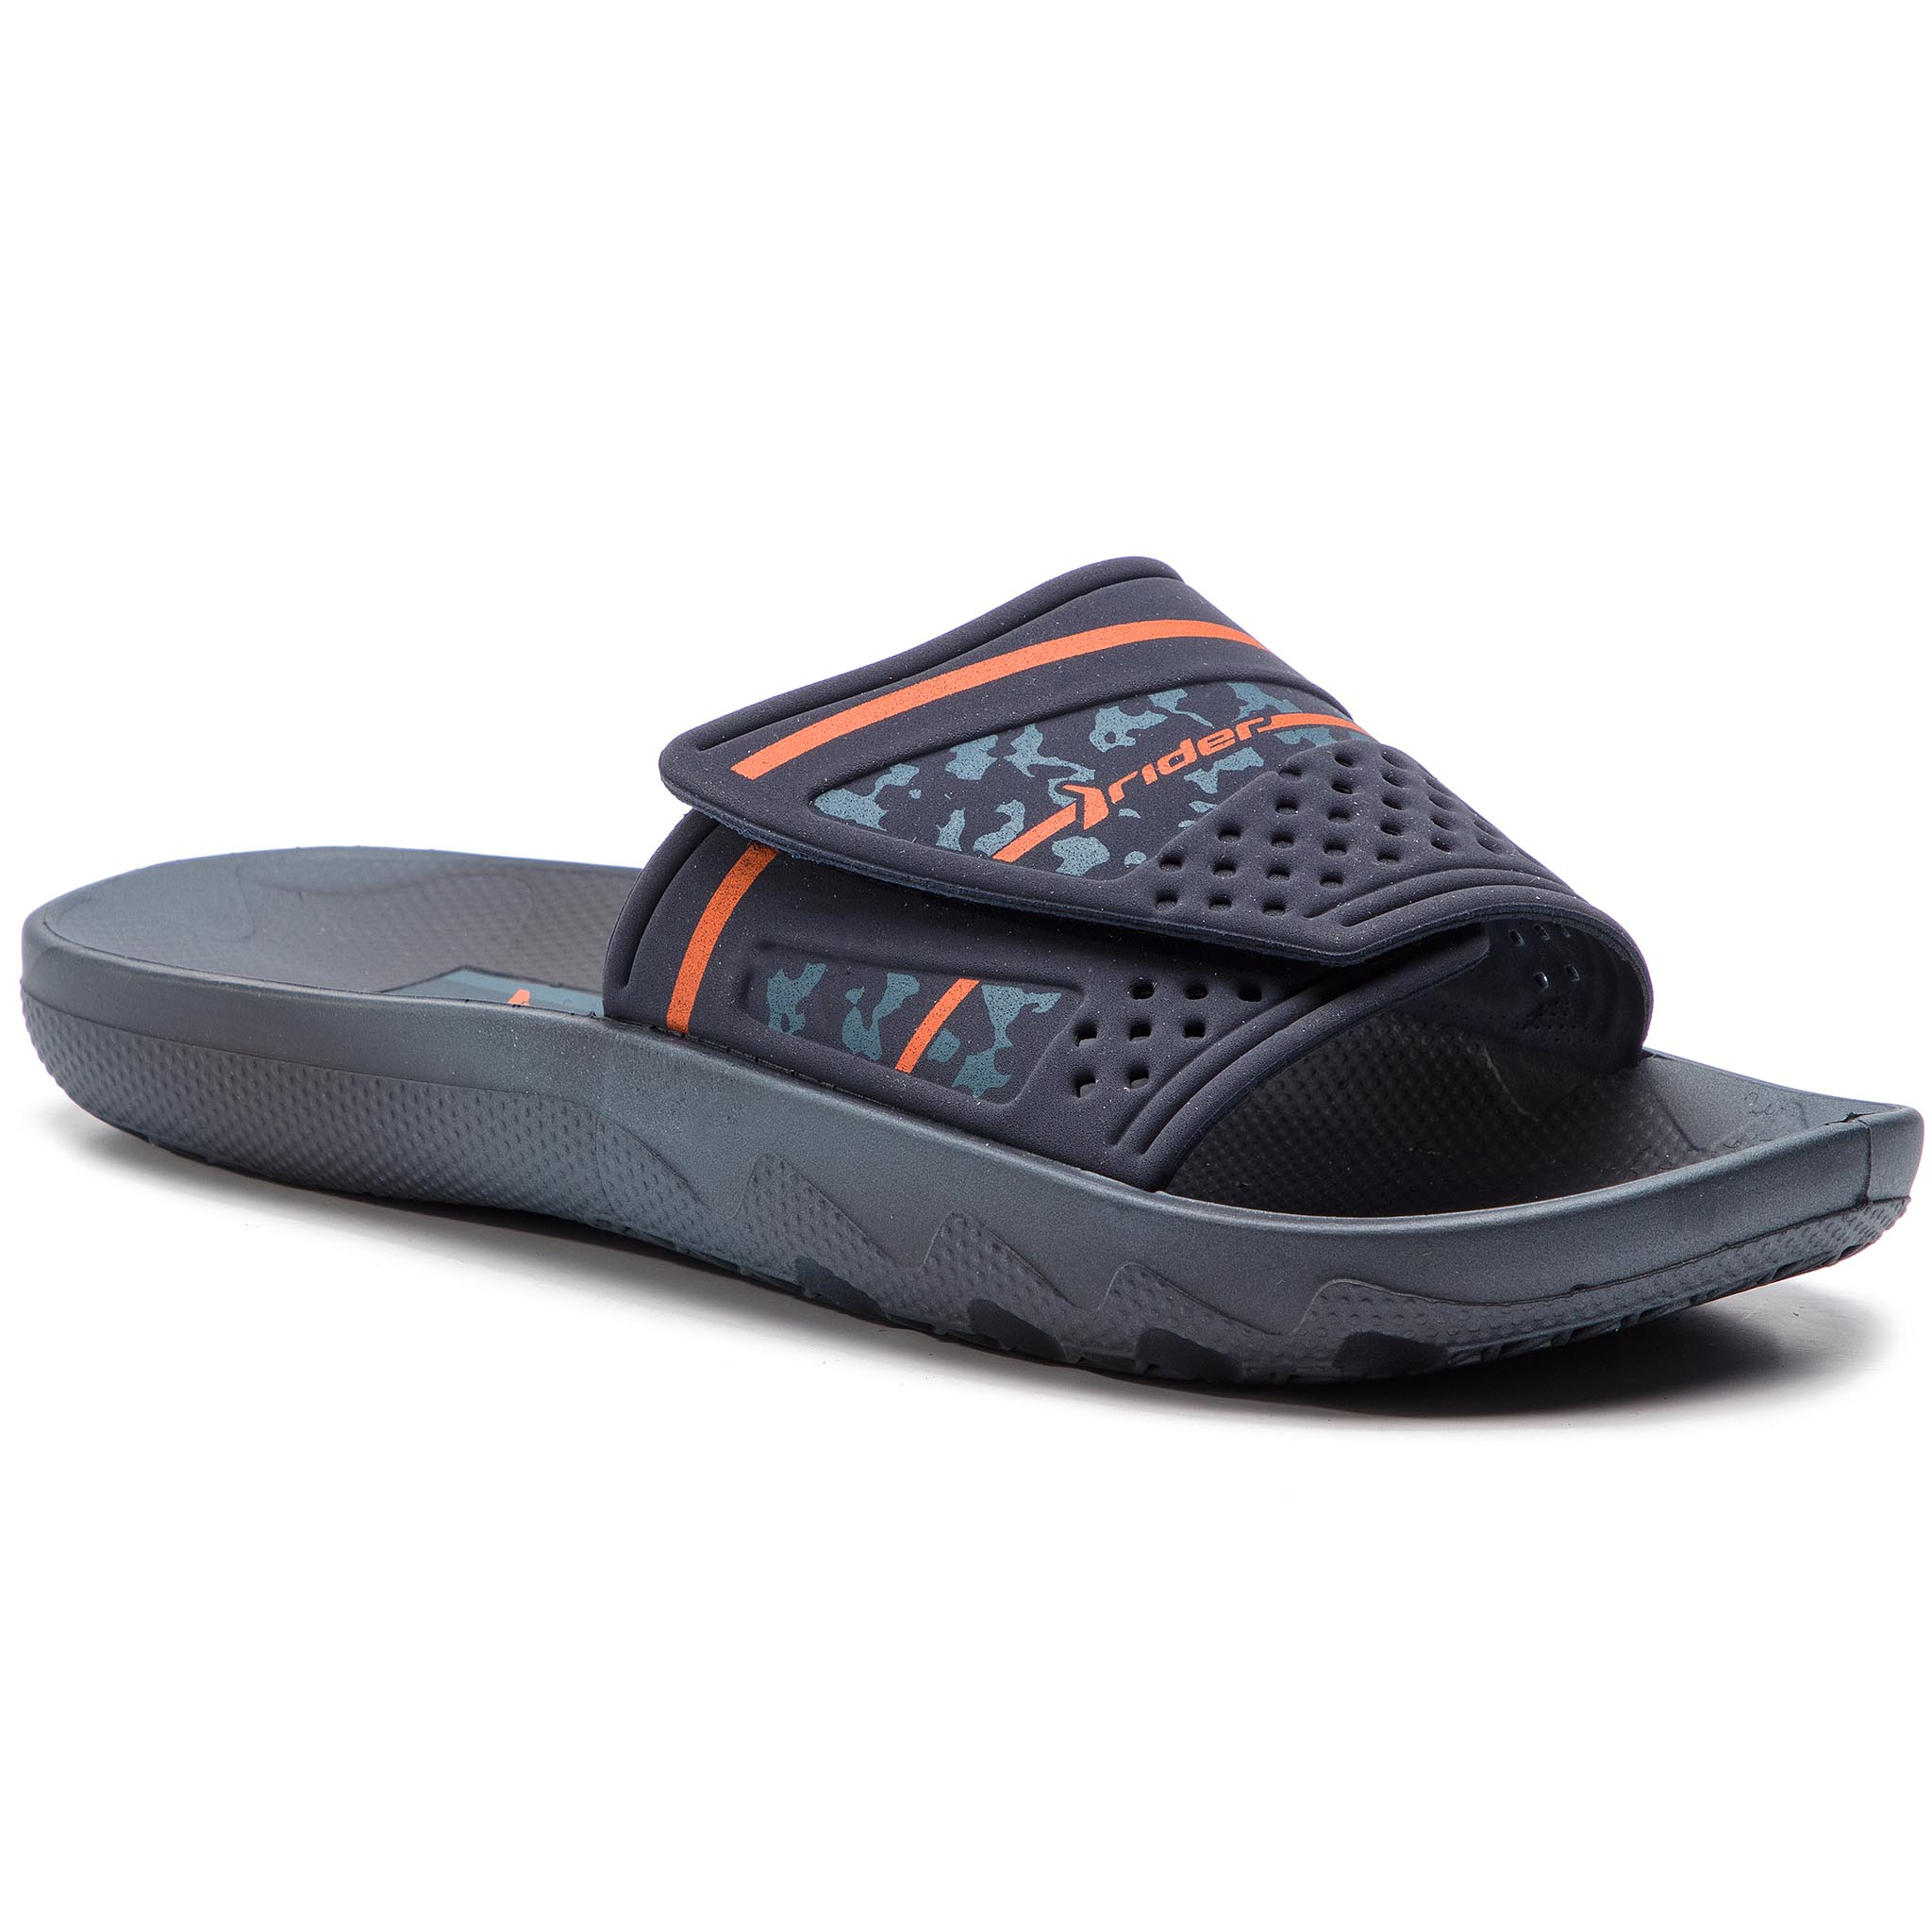 318c3c09654b3 Slides NIKE - Benassi Solarsoft 705474 091 Black/Anthracite - Clogs ...